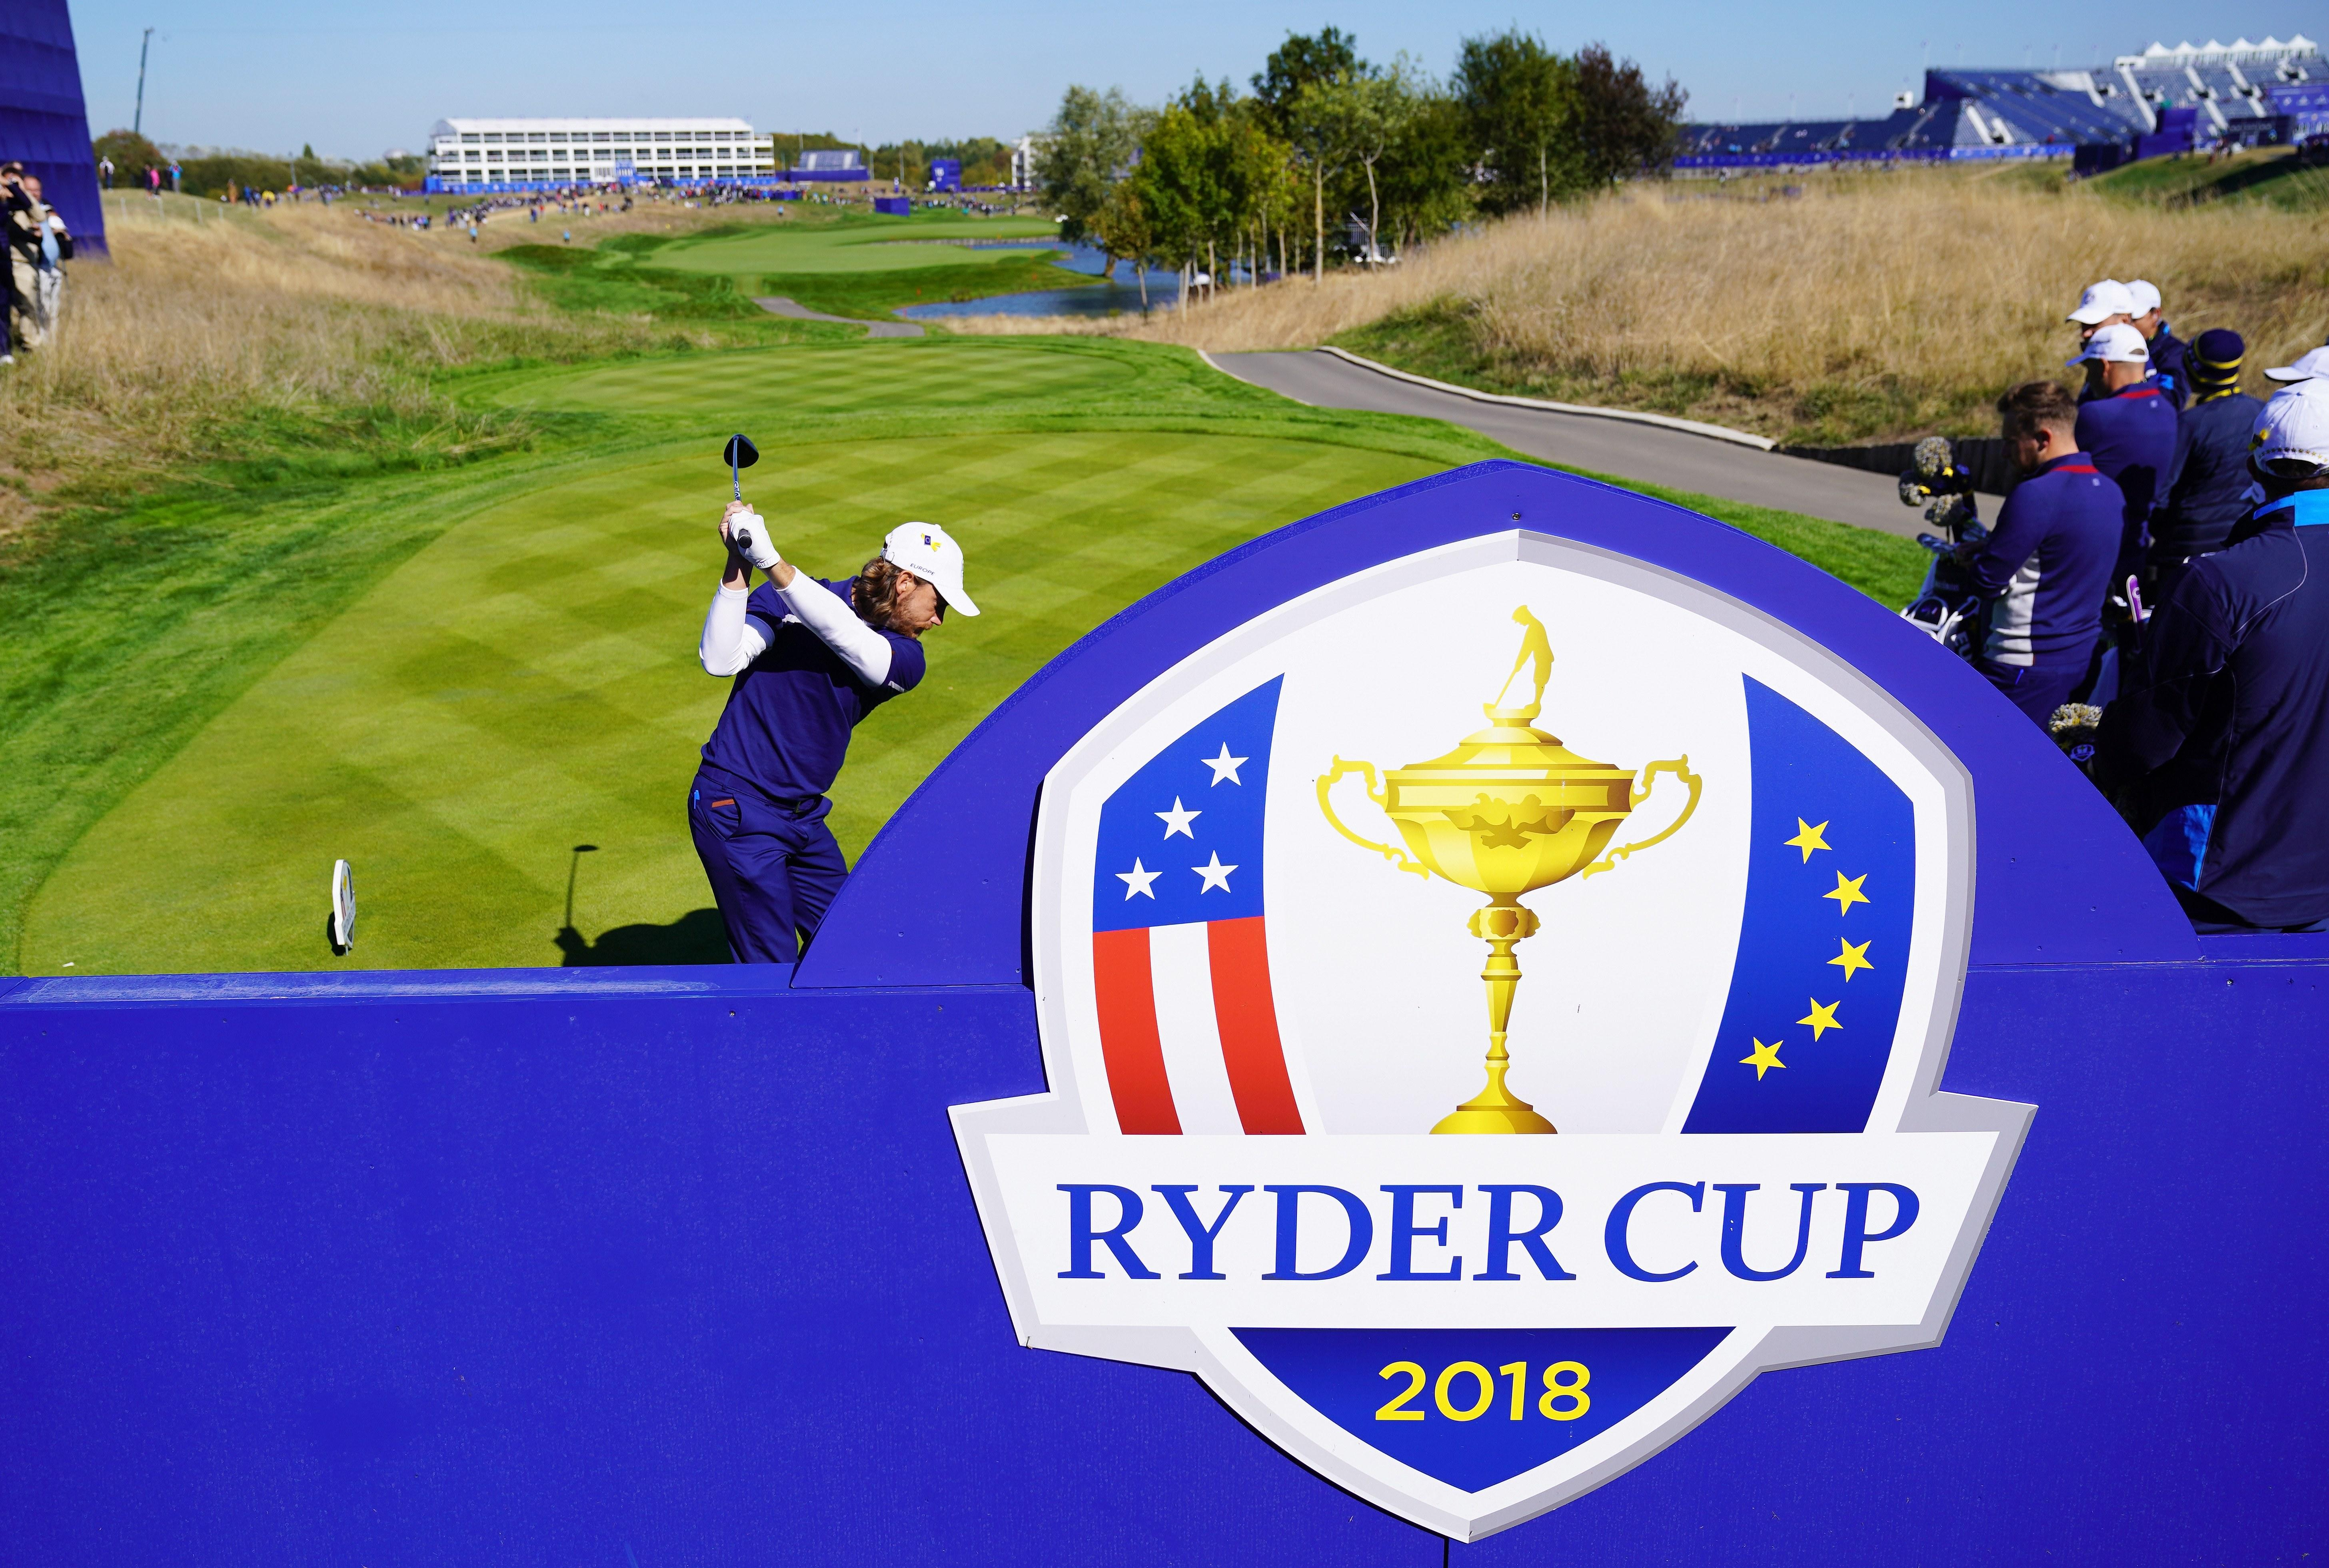 ryder cup 2018 television schedule and live streaming guide. Black Bedroom Furniture Sets. Home Design Ideas